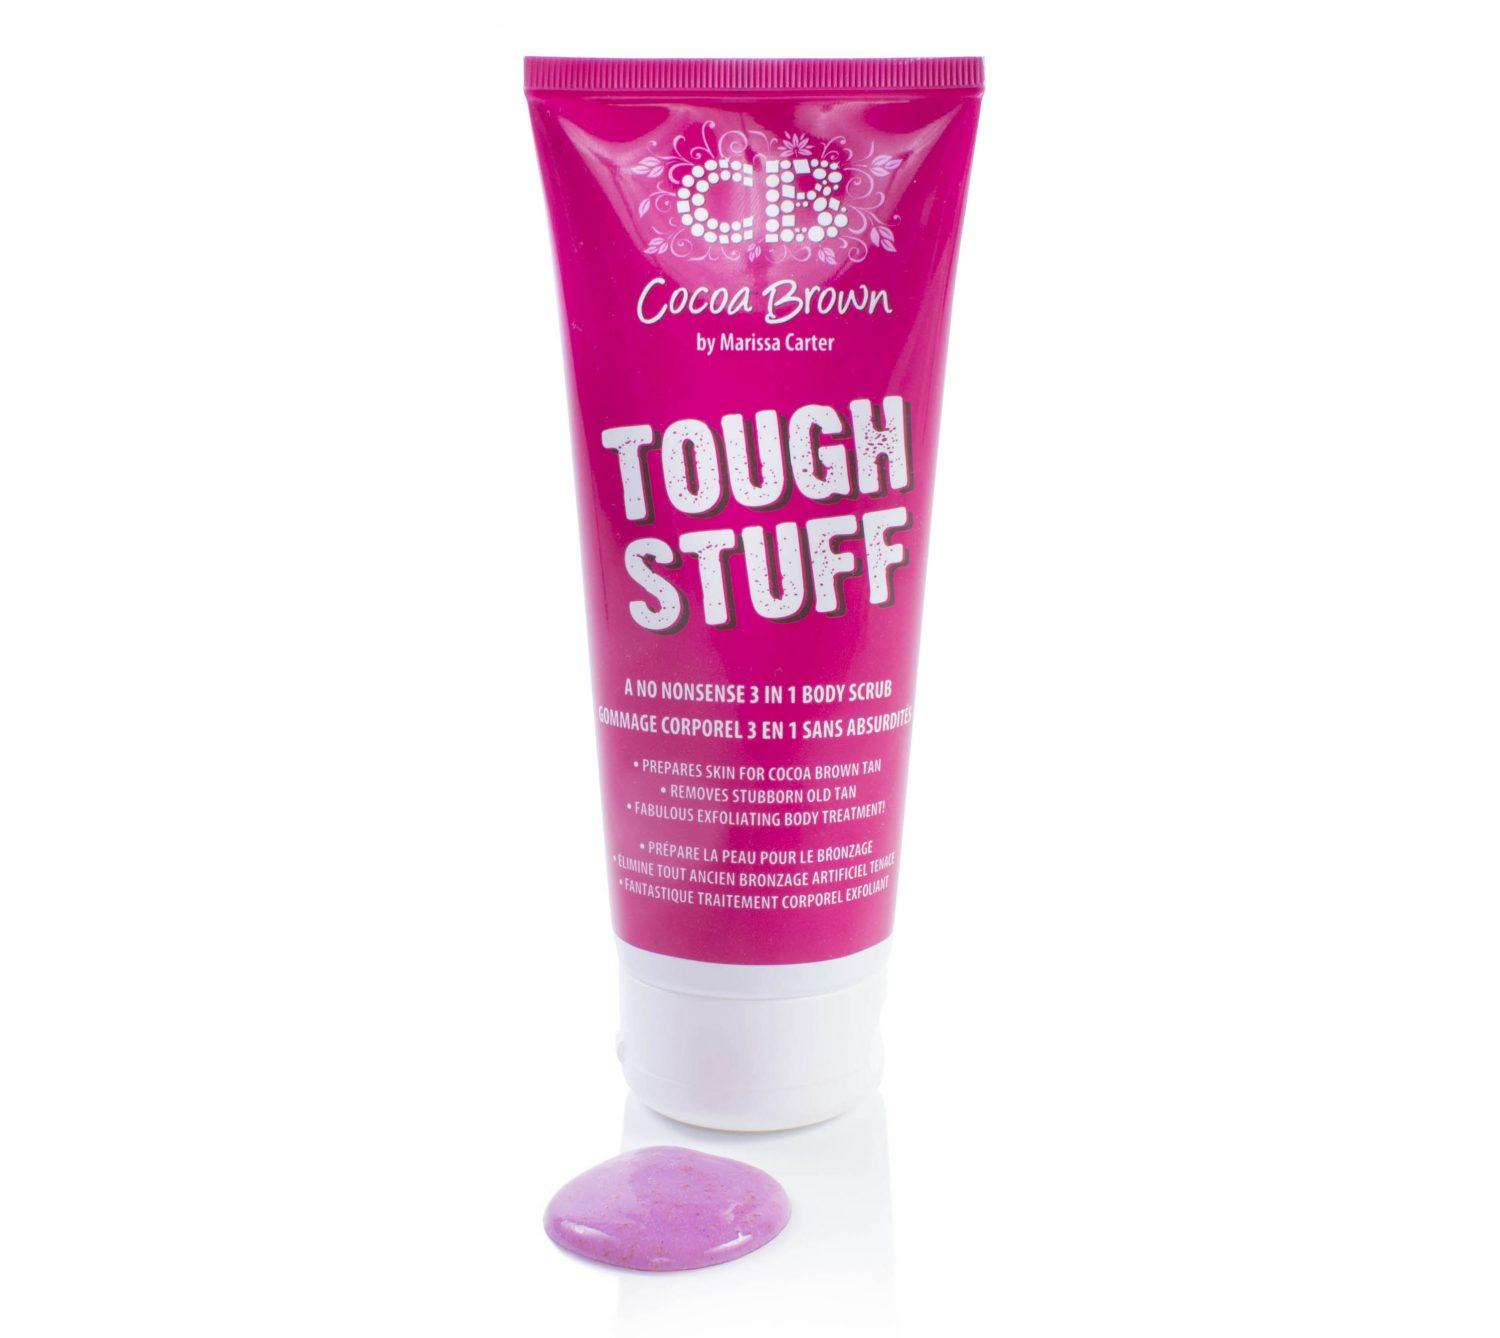 ae2f22e16 Cocoa Brown Tough Stuff 3 in 1 Body Scrub kopen